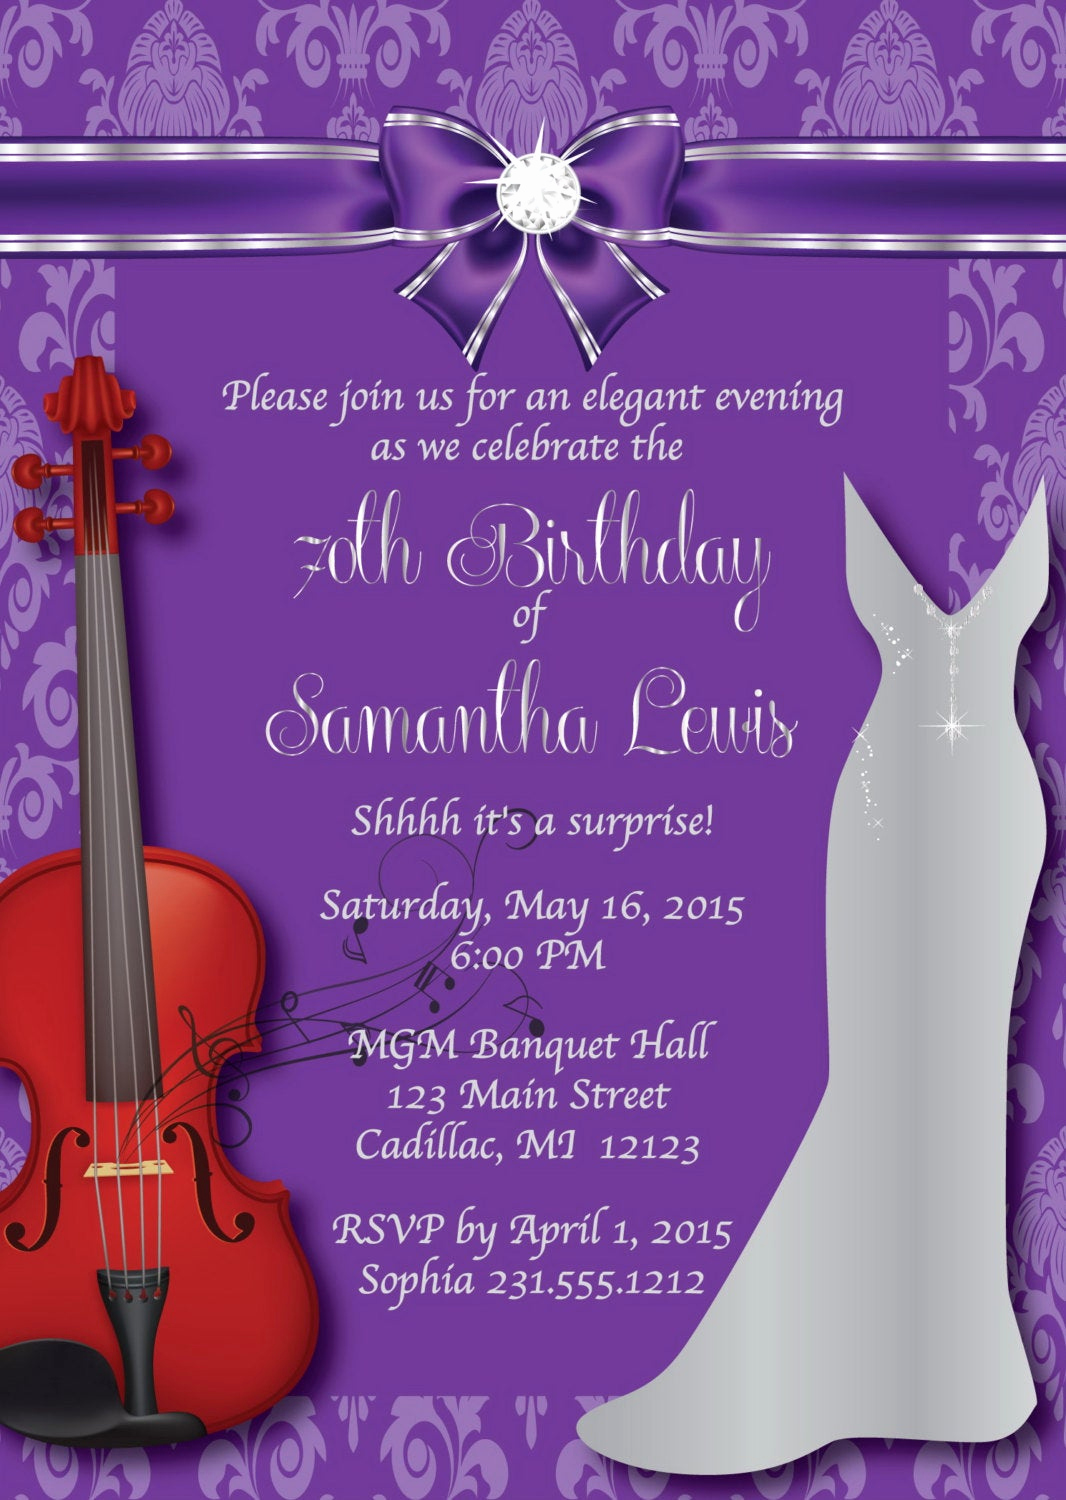 70th Birthday Party Invitation Wording Luxury 70th Birthday Invitation Women S Elegant Birthday